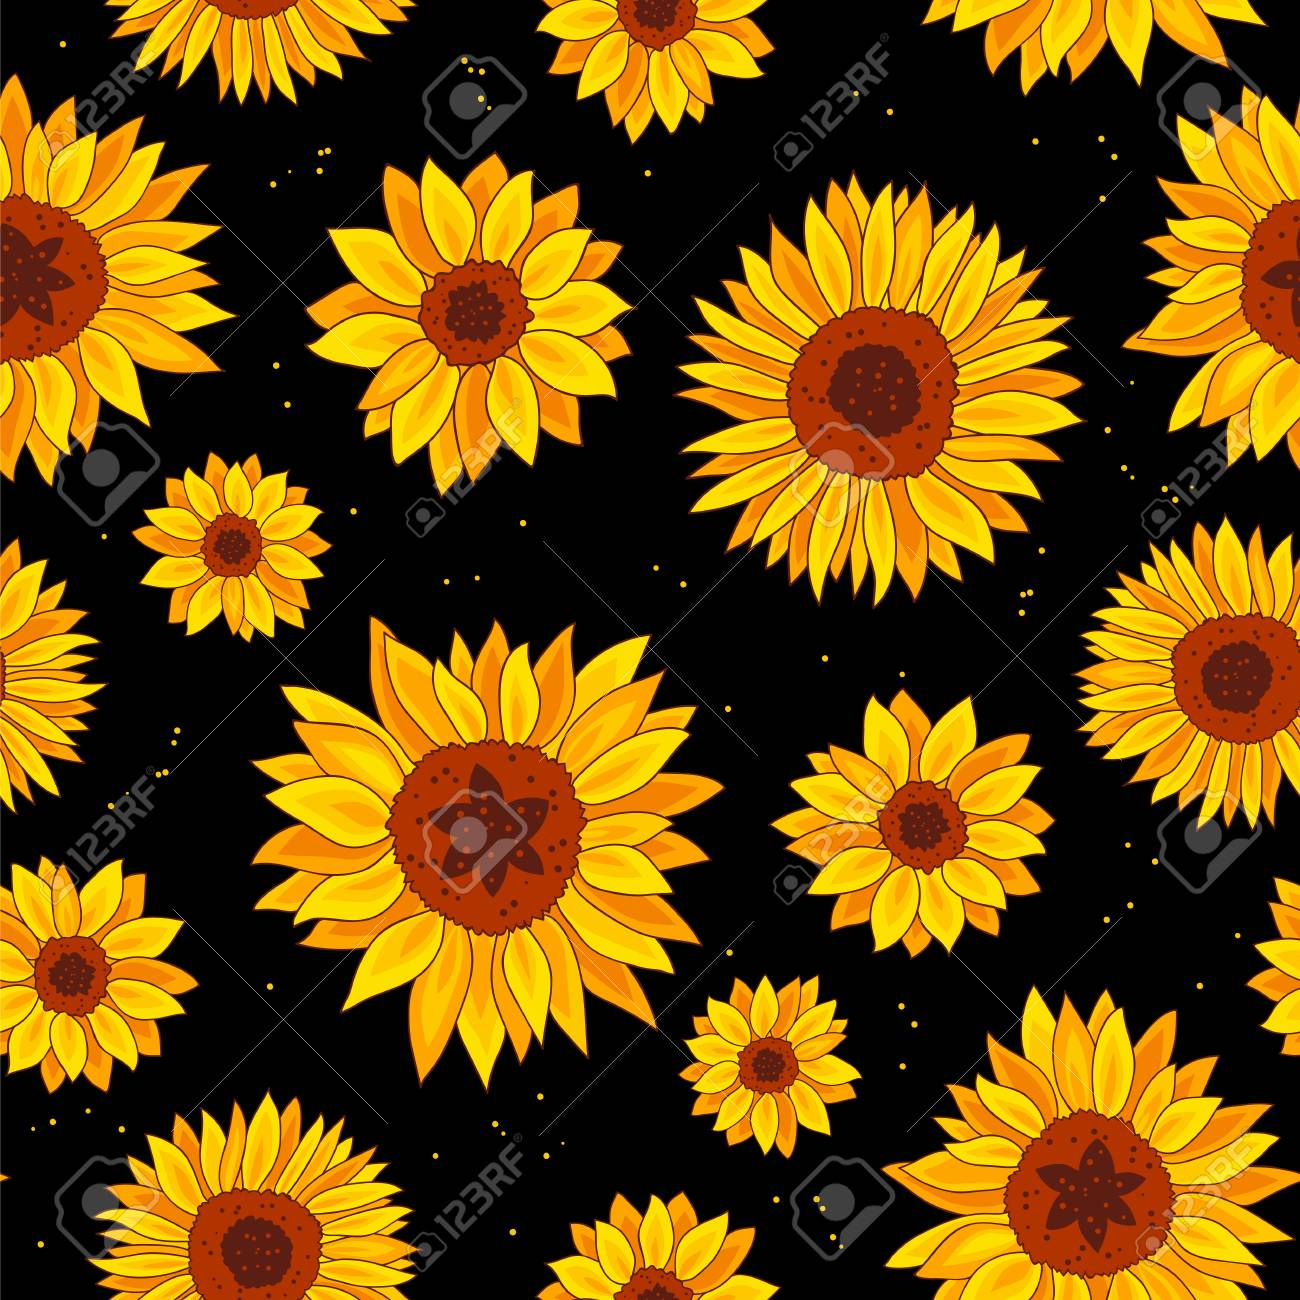 71855655 seamless vector pattern of sunflowers on a black background wrapping paper summer print